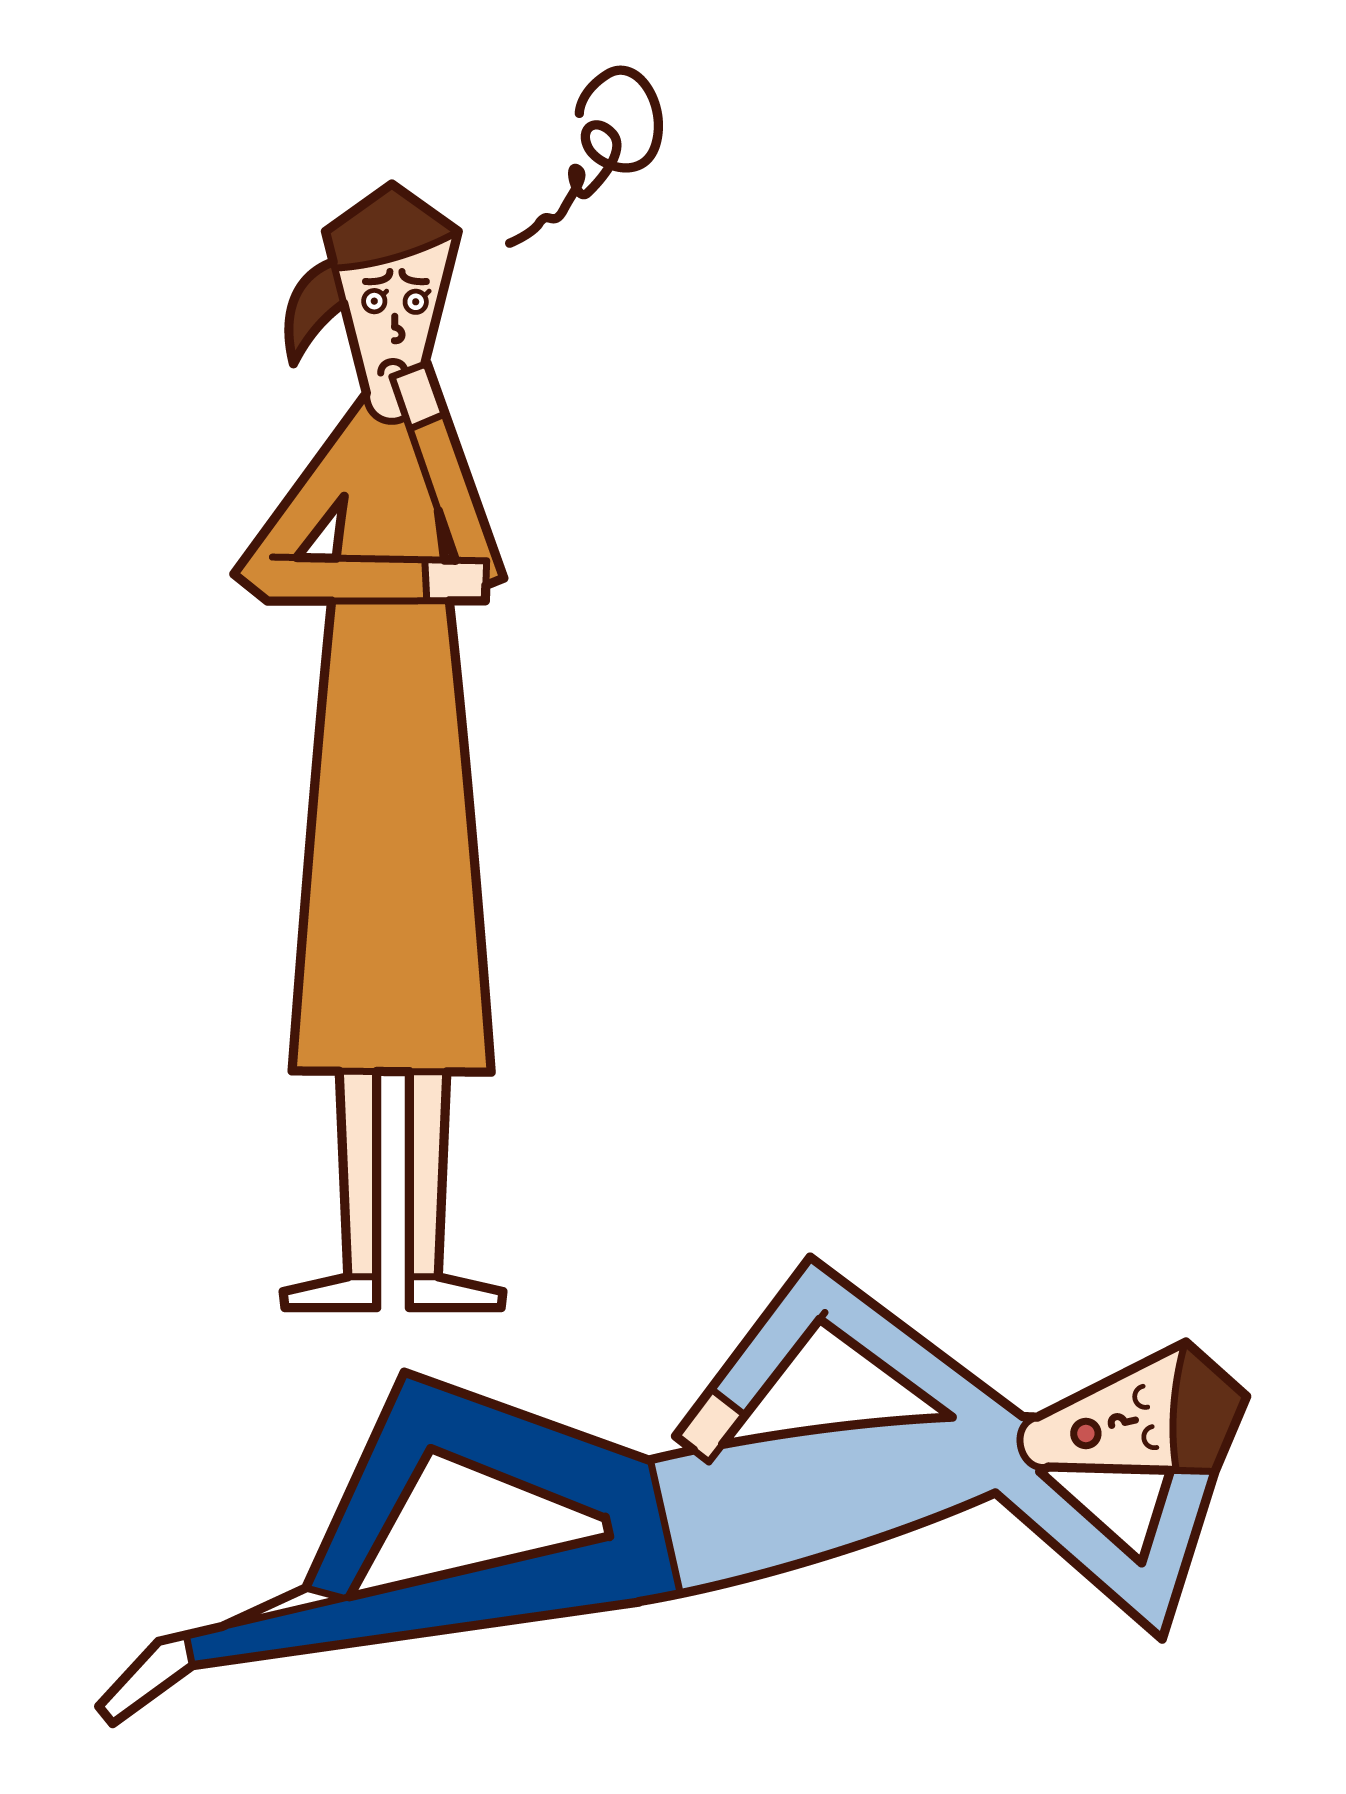 Illustration of husband who does not do housework